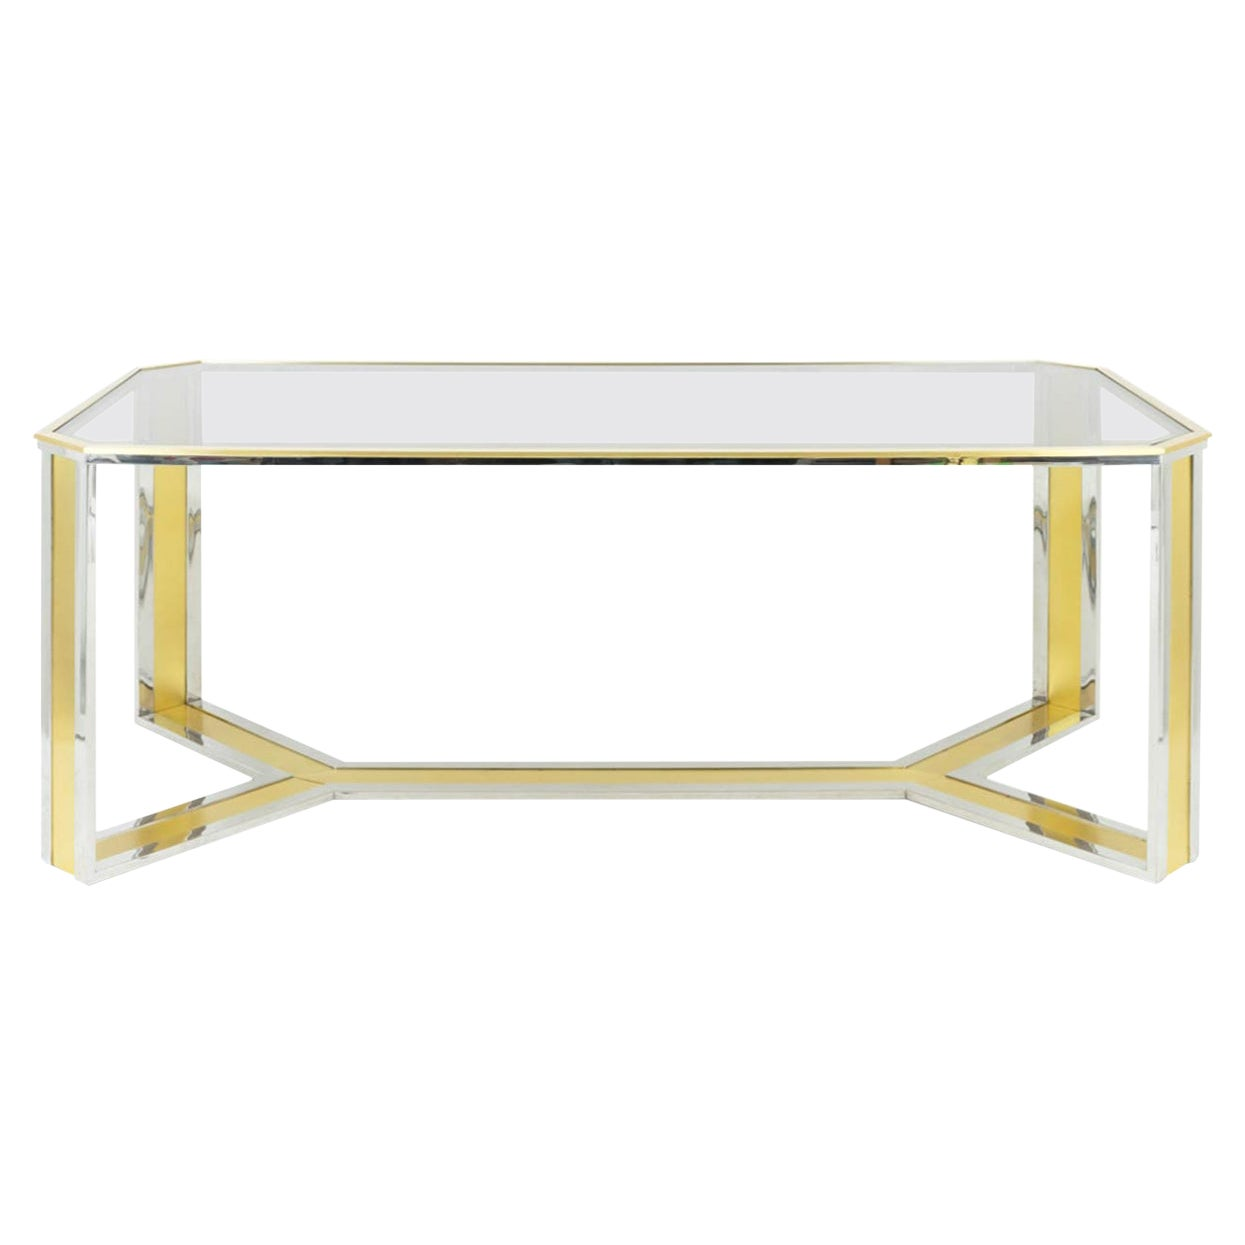 Romeo Rega Style Table in Chromed and Gilt Brass, Smoked Glass, 1970s